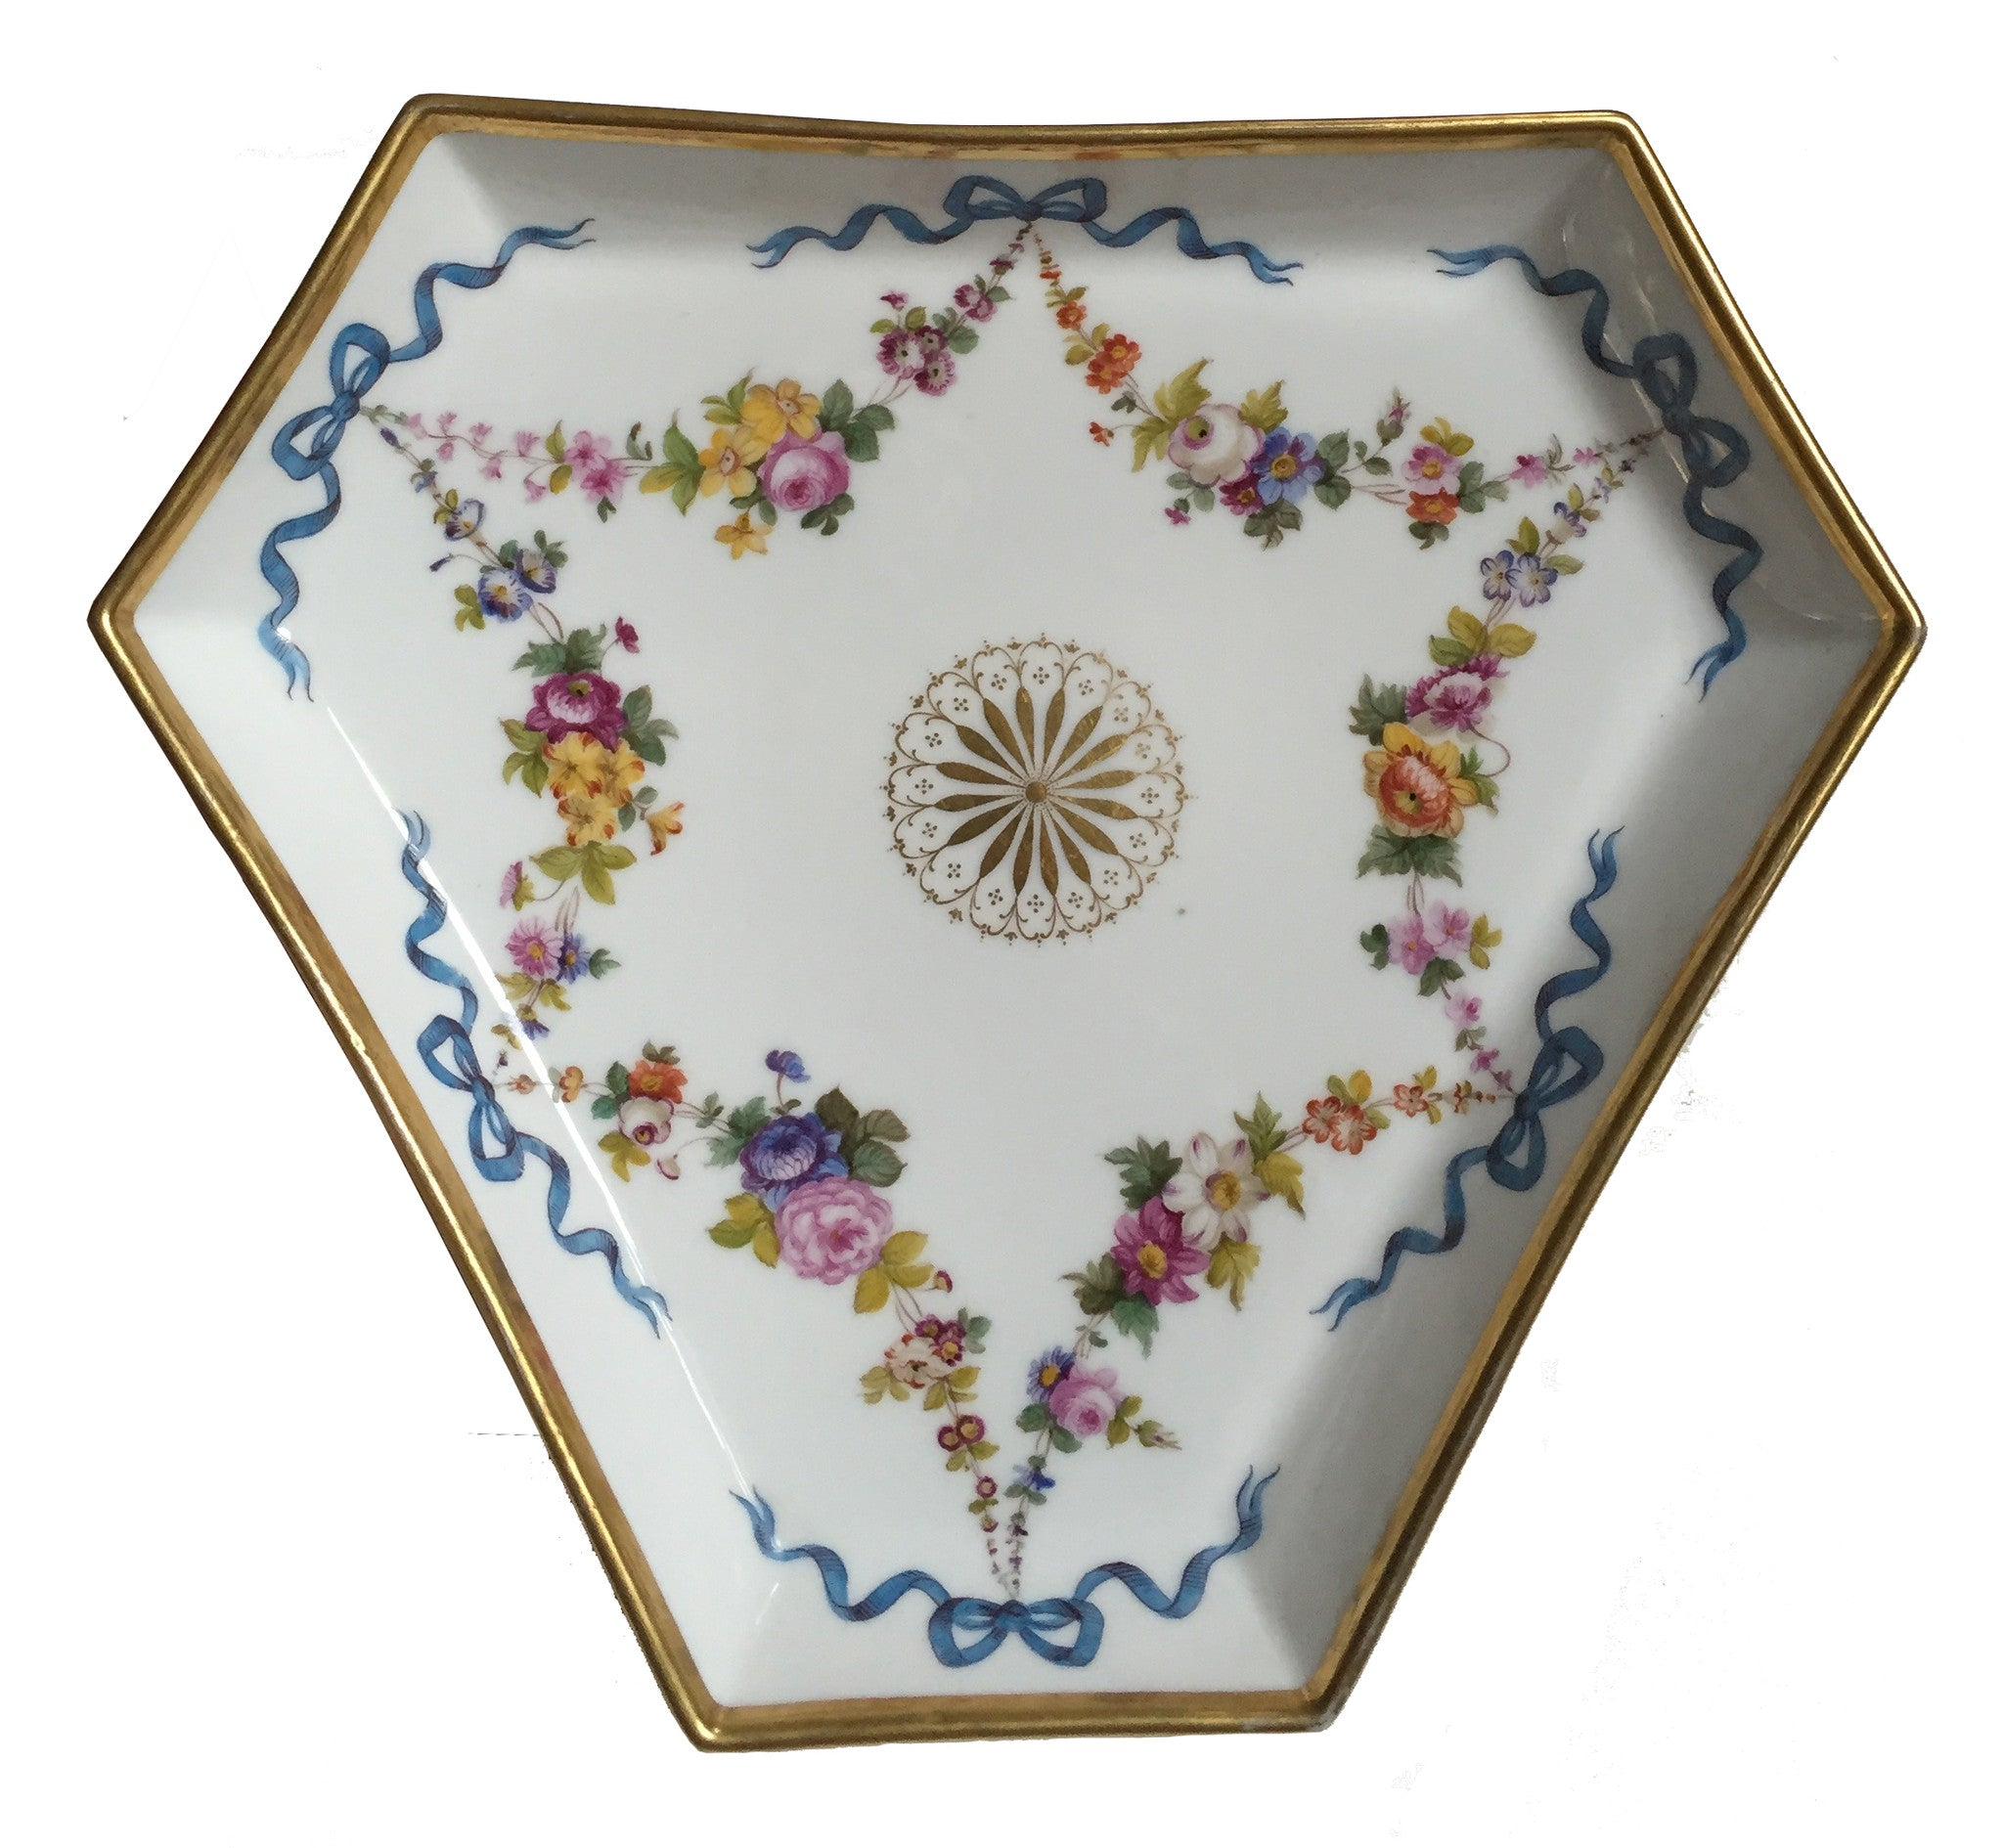 SOLD French Paris Nast Porcelain Shaped Tray, circa 1820